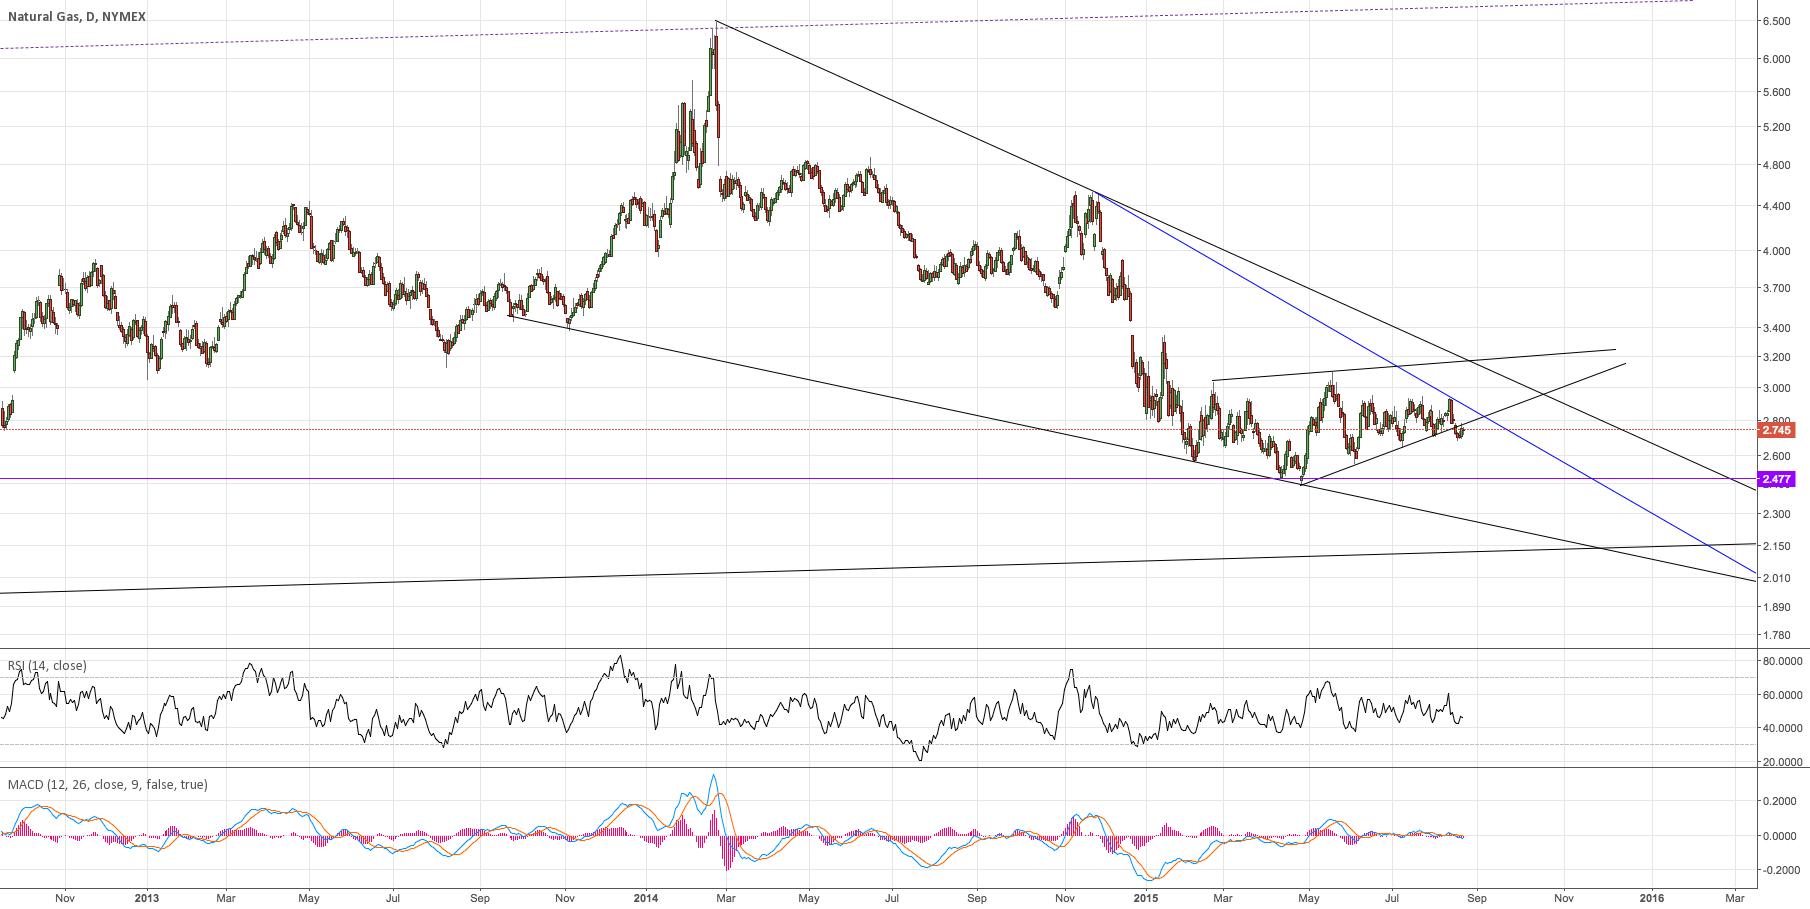 This has not bottomed yet, broke down from big support!